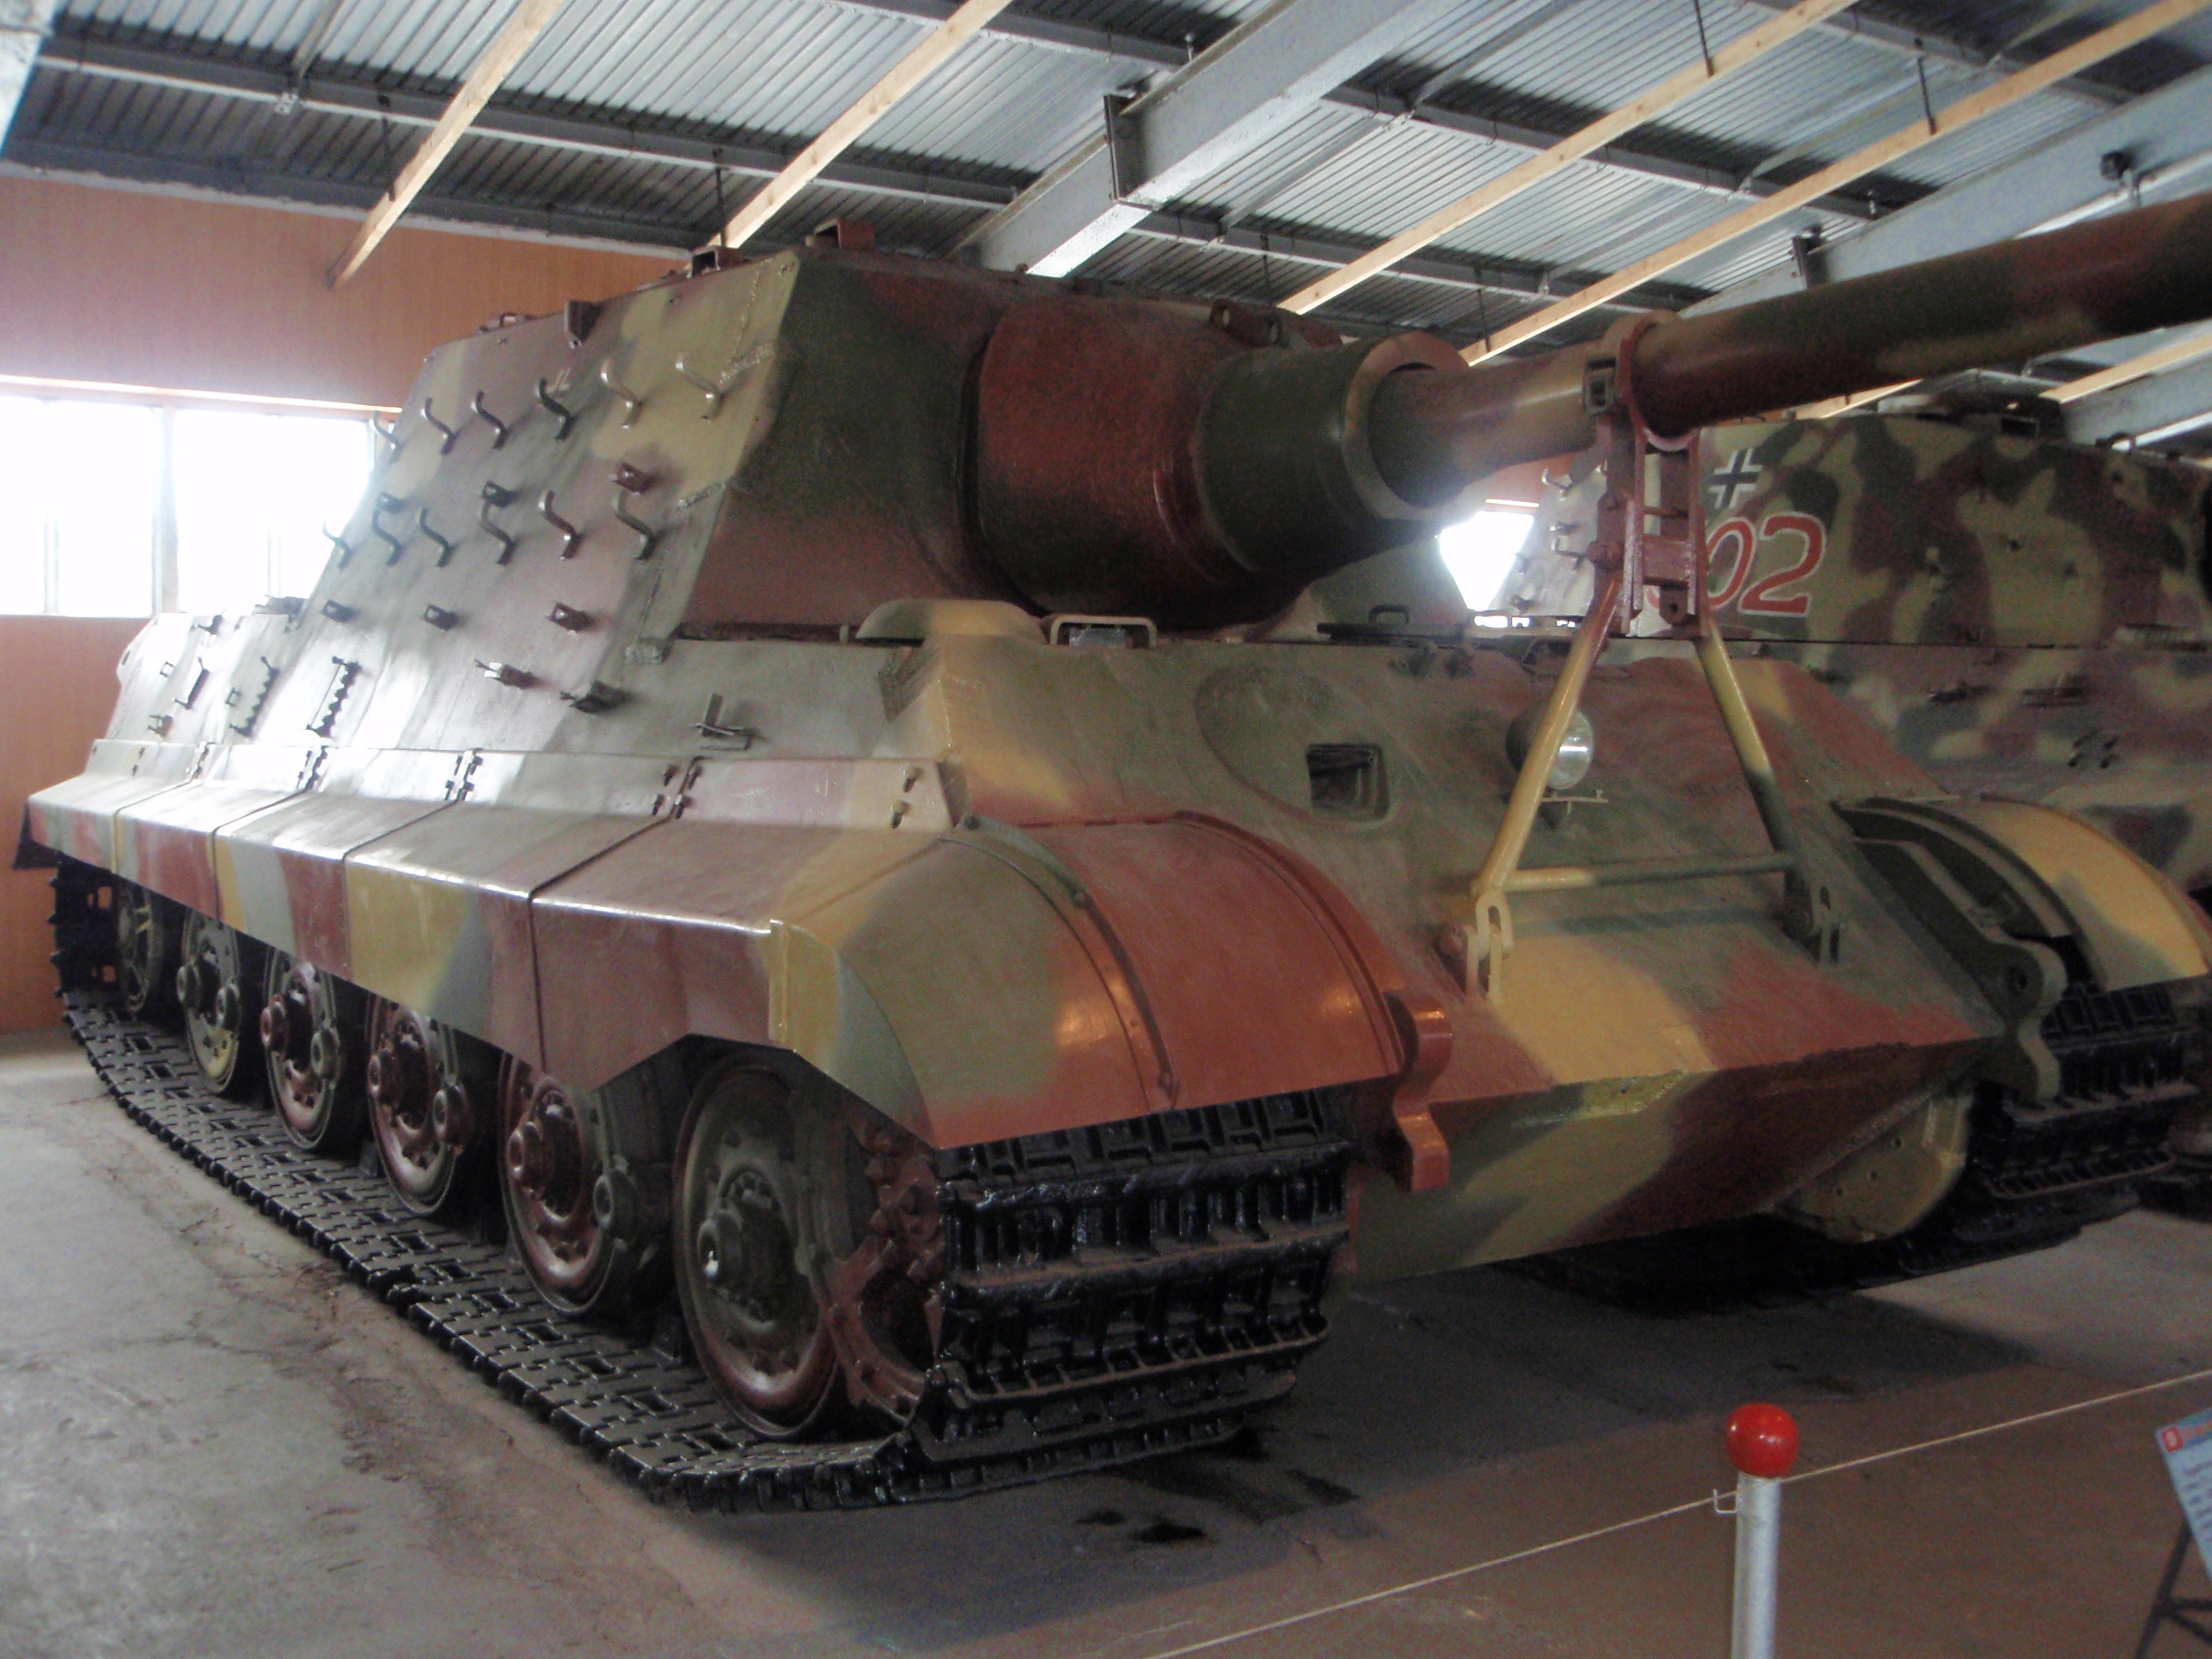 File:Jagdtiger in the Kubinka.jpg - Wikimedia Commons